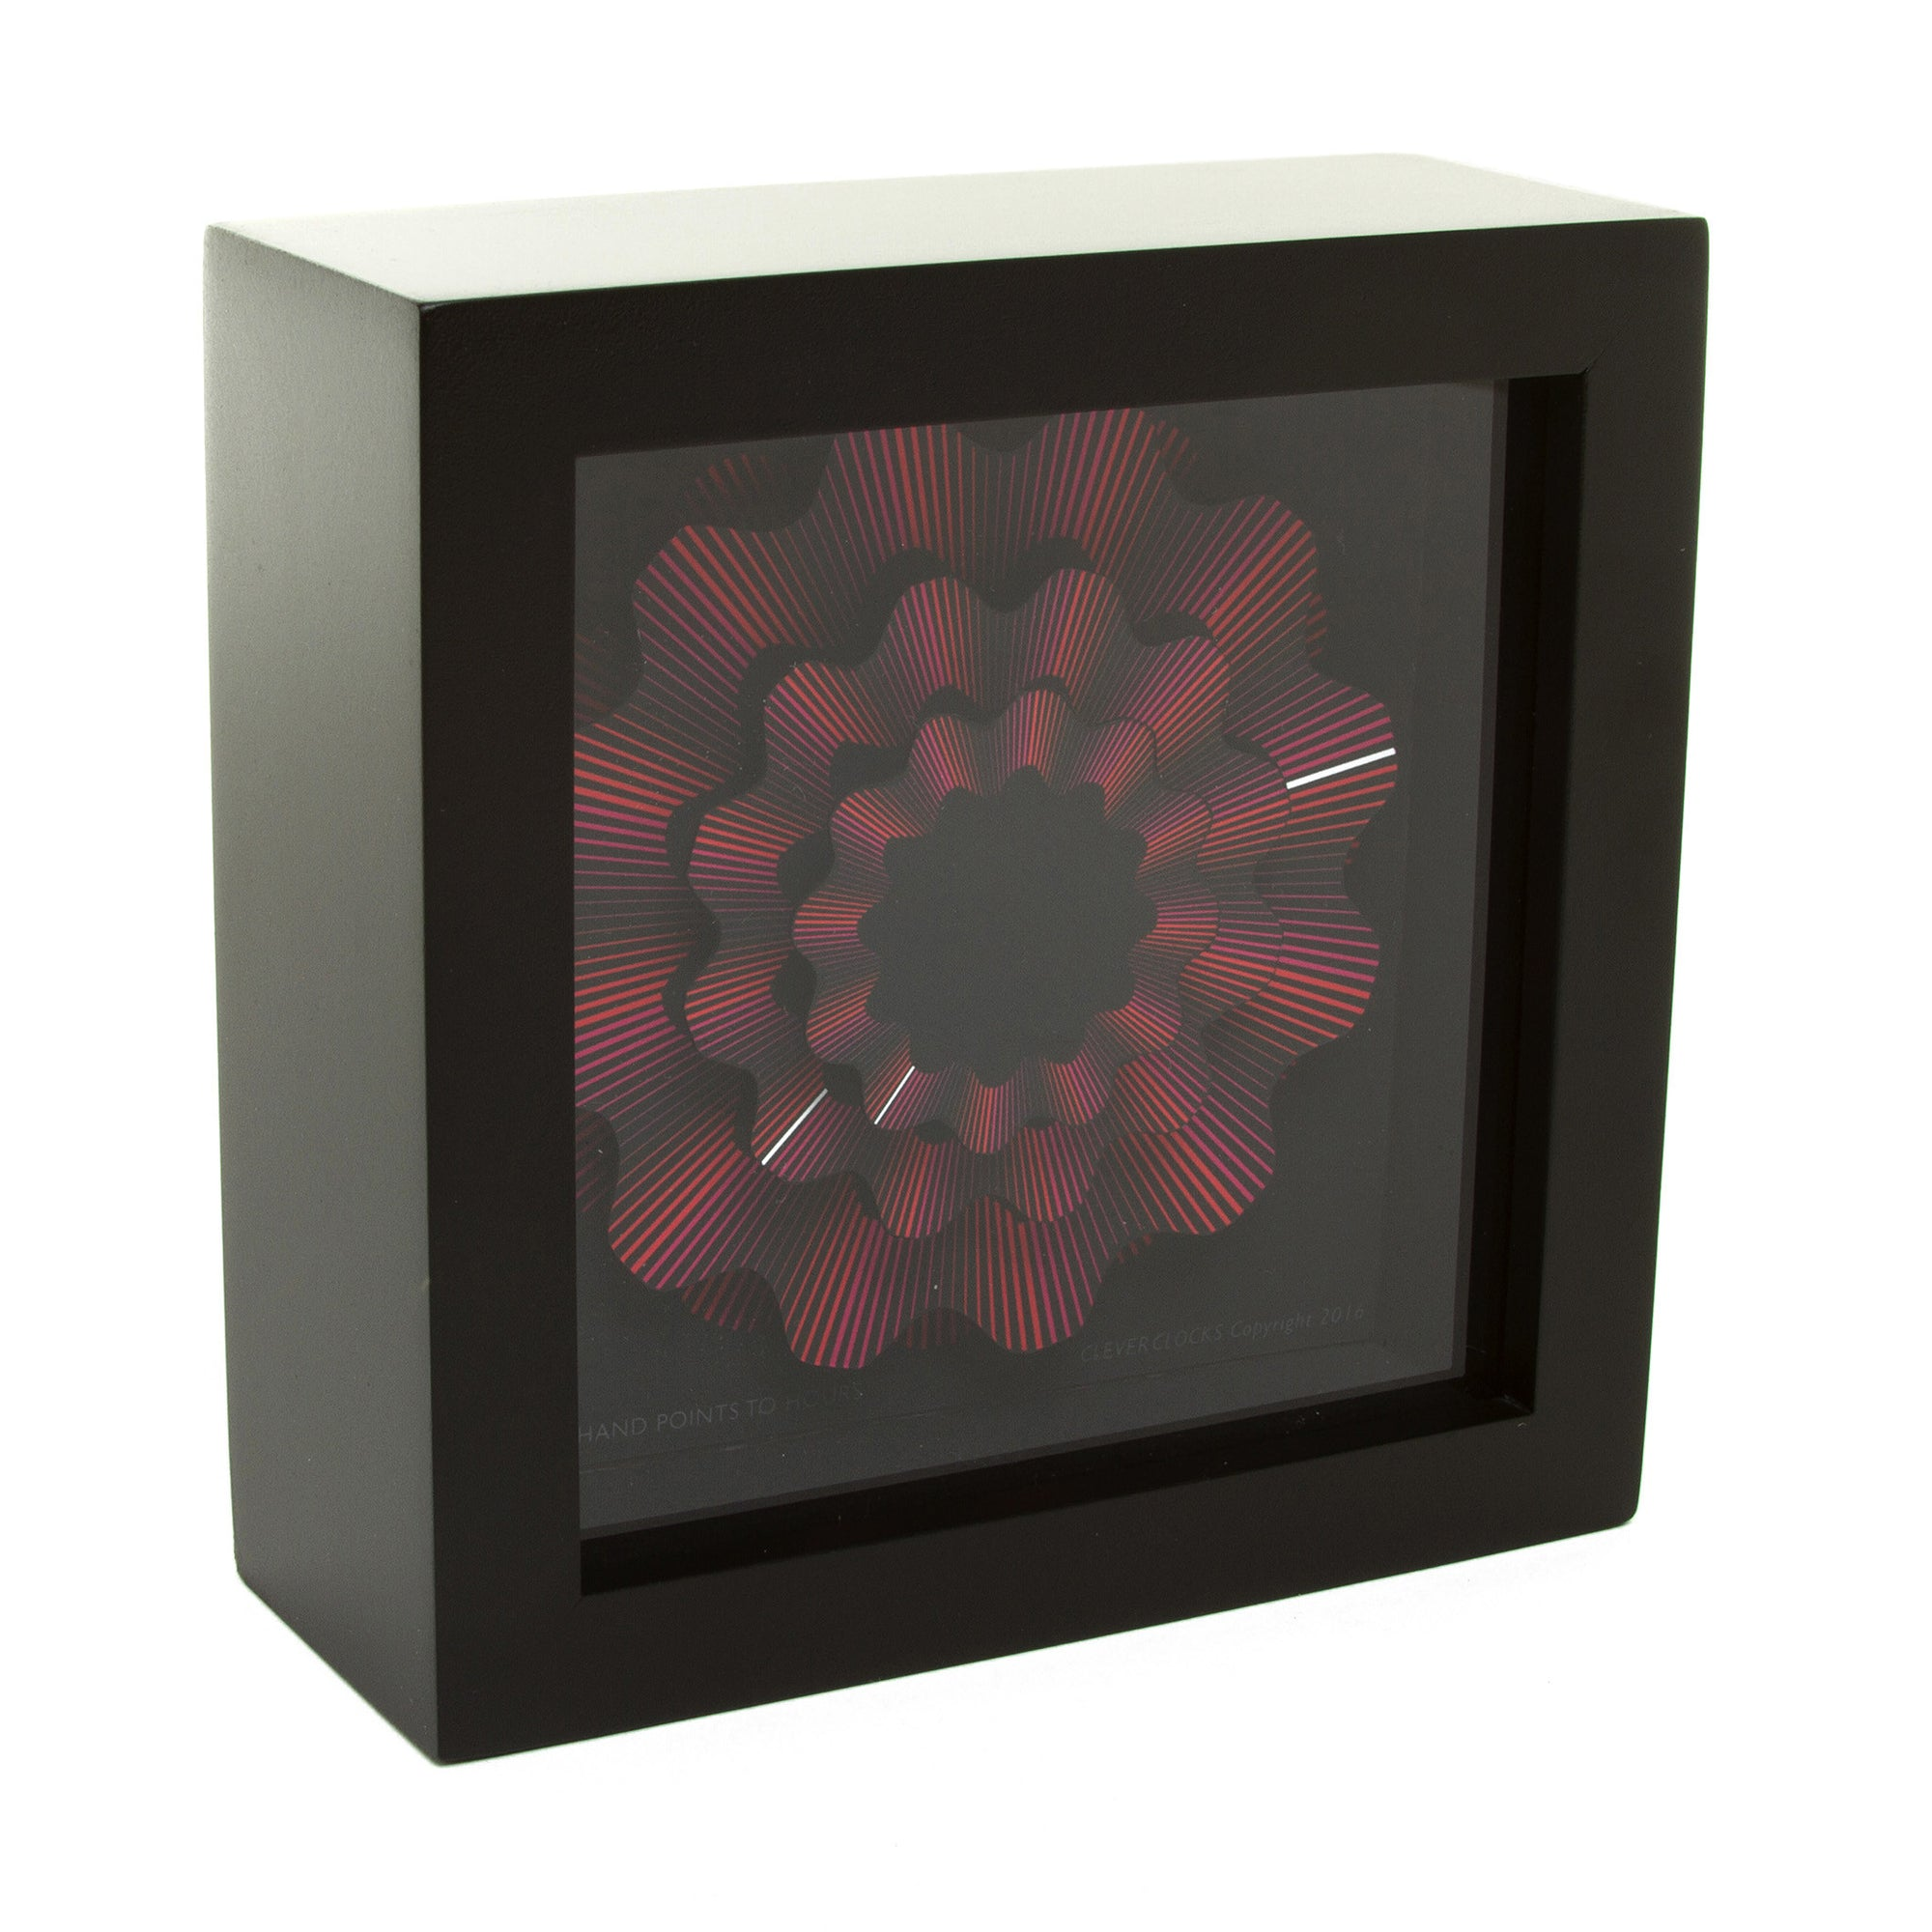 Red Ribbon Desk Clock - 5.5"